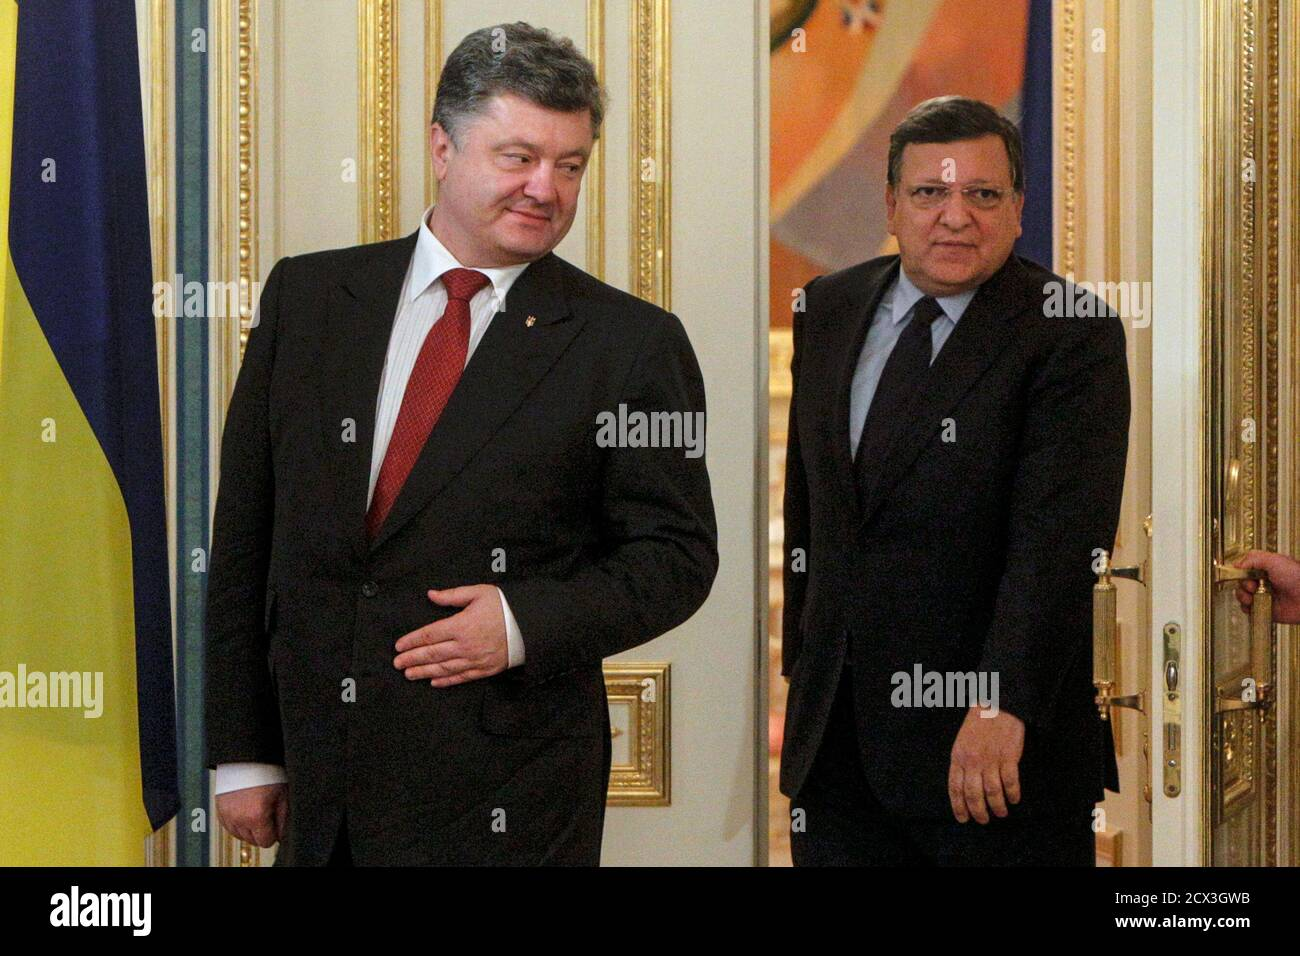 "Ukrainian President Petro Poroshenko (L) and outgoing European Commission President Jose Manuel Barroso enter a room before their meeting in Kiev, September 12, 2014. Poroshenko said on Friday there could be no military solution to his country's crisis and said he hoped ""a very fragile"" ceasefire in the east would hold, allowing him to focus on rebuilding the shattered economy. REUTERS/Valentyn Ogirenko (UKRAINE  - Tags: POLITICS CIVIL UNREST CONFLICT) Banque D'Images"